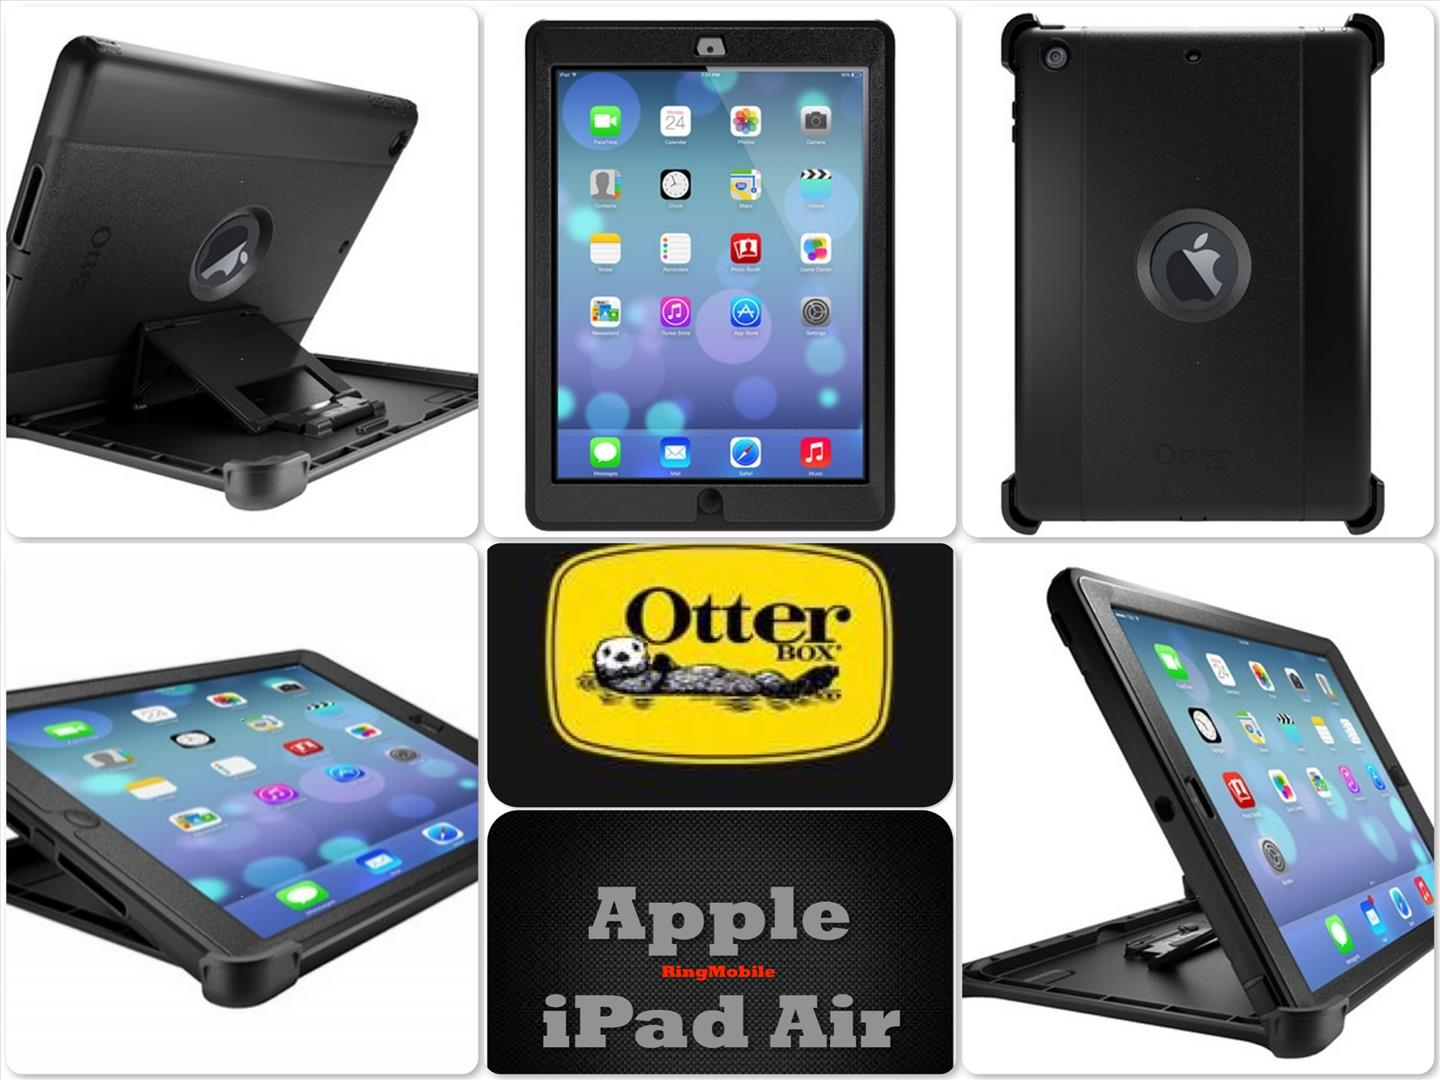 Bdotcom = Apple iPad Air Otterbox Defender Series @ Black